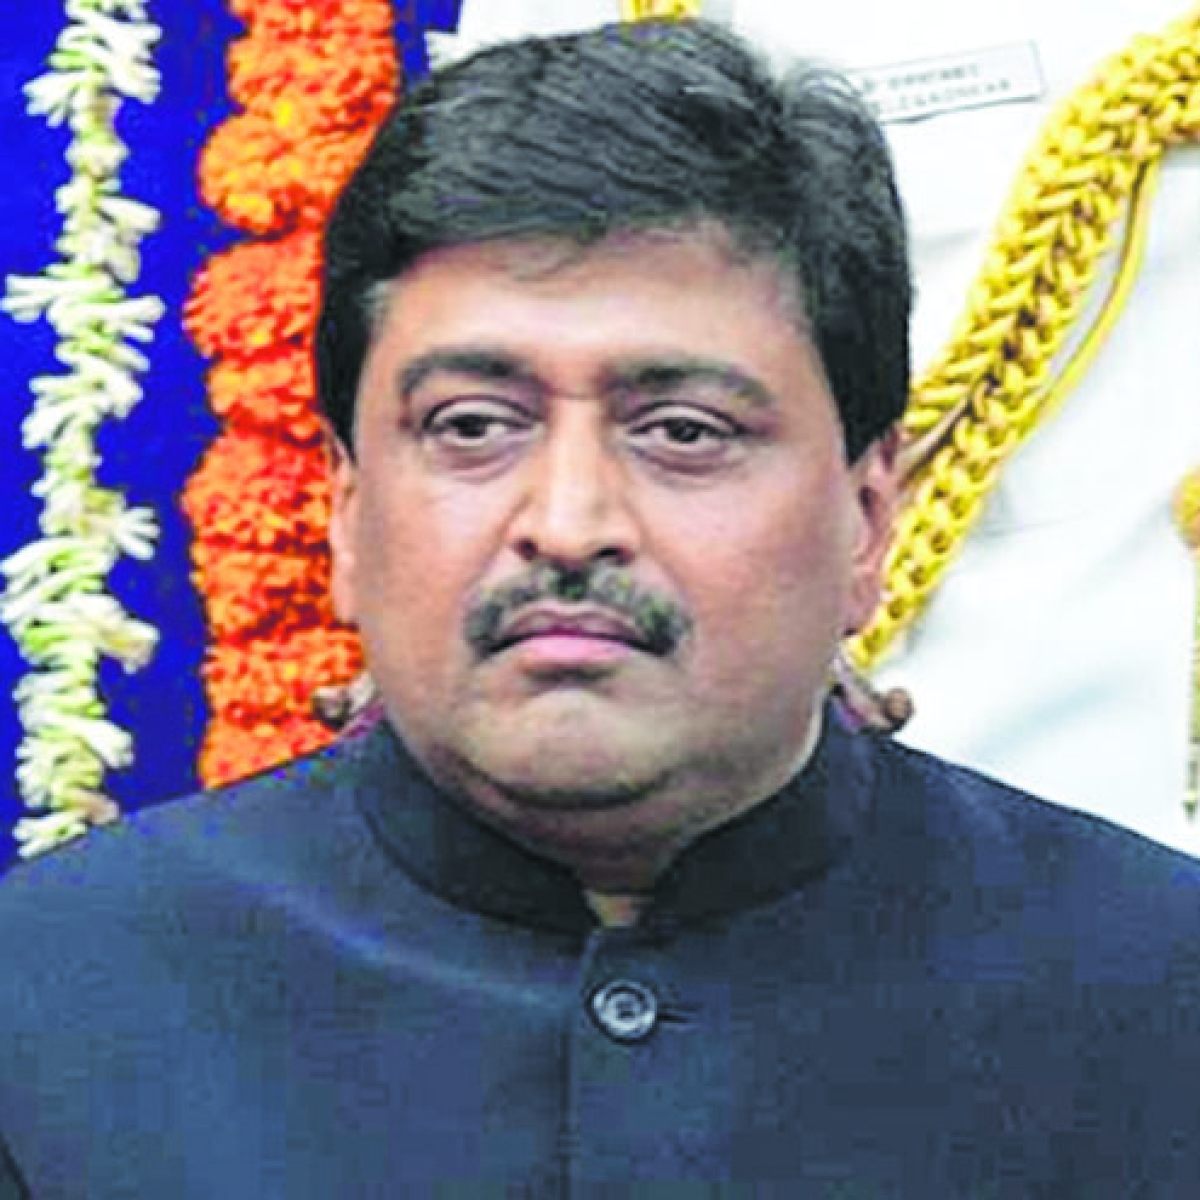 Coronavirus in Mumbai: Former CM Ashok Chavan tests positive